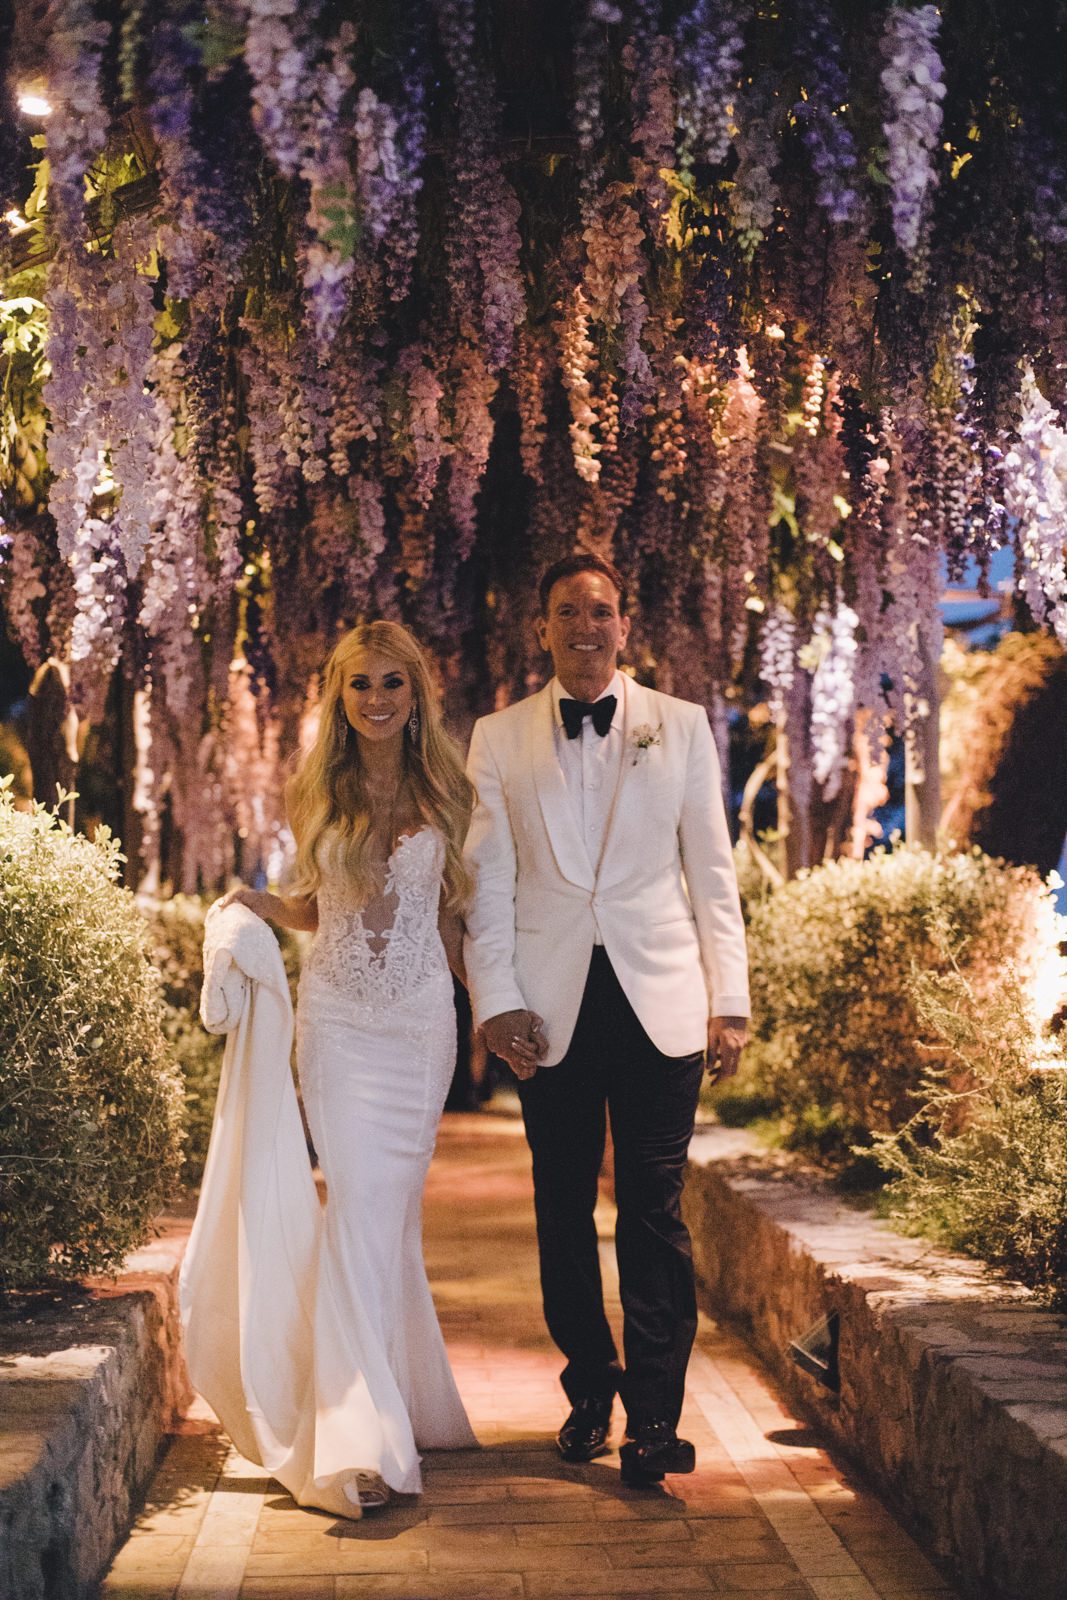 the bride and the groom walking hand in hand under the wisteria